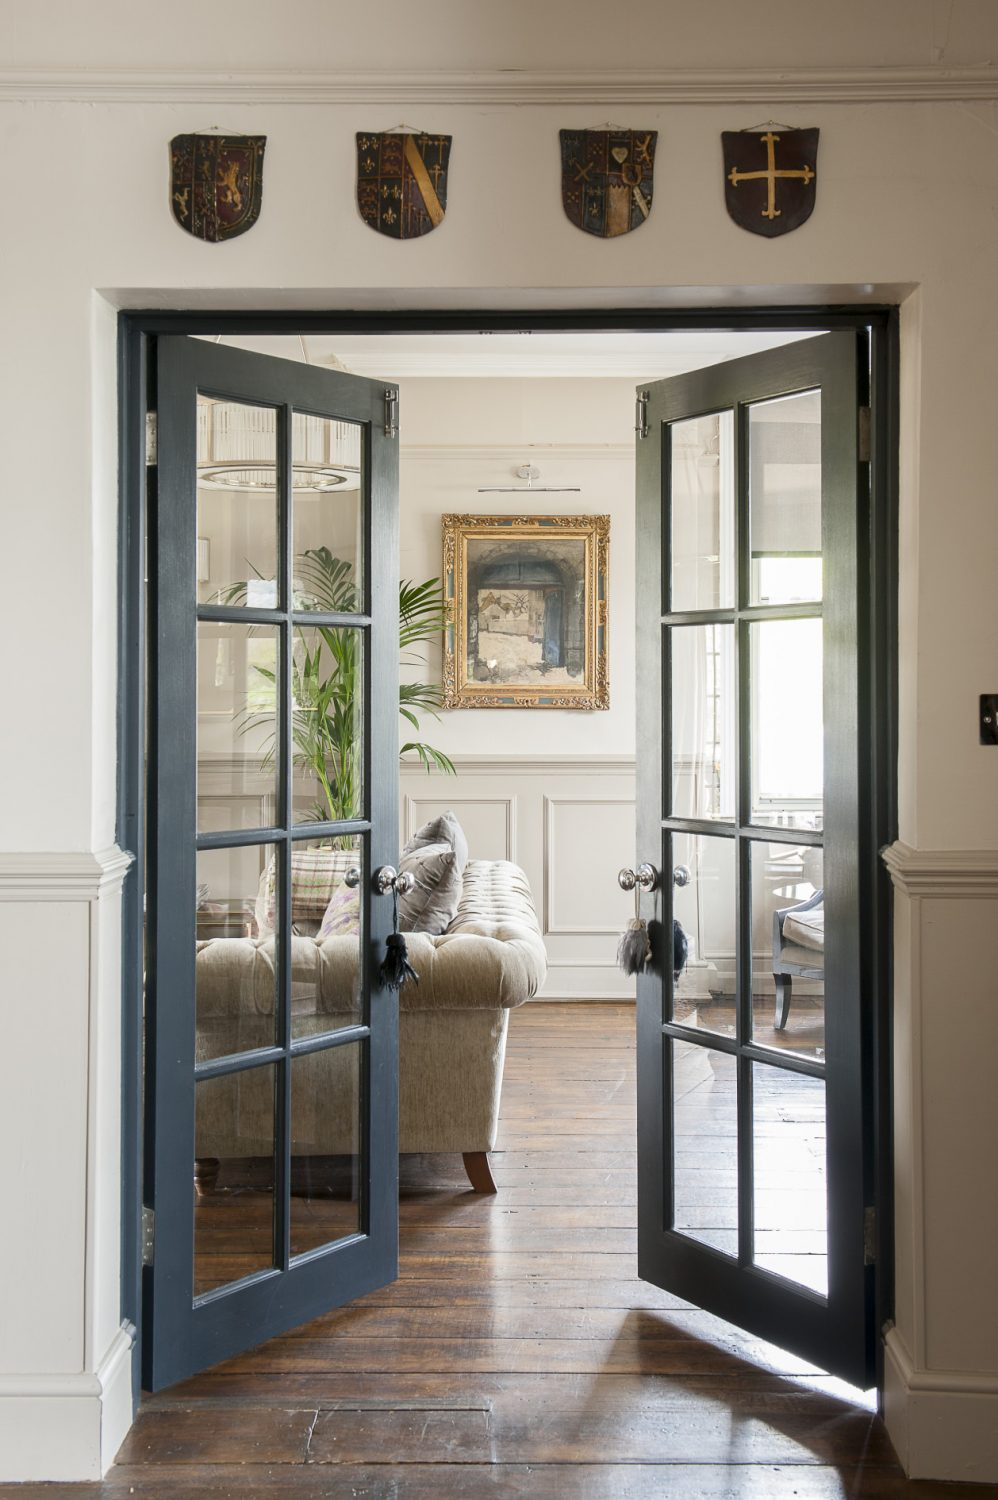 Glass doors between the hall and drawing room allow natural light to flood between the rooms at all times of day